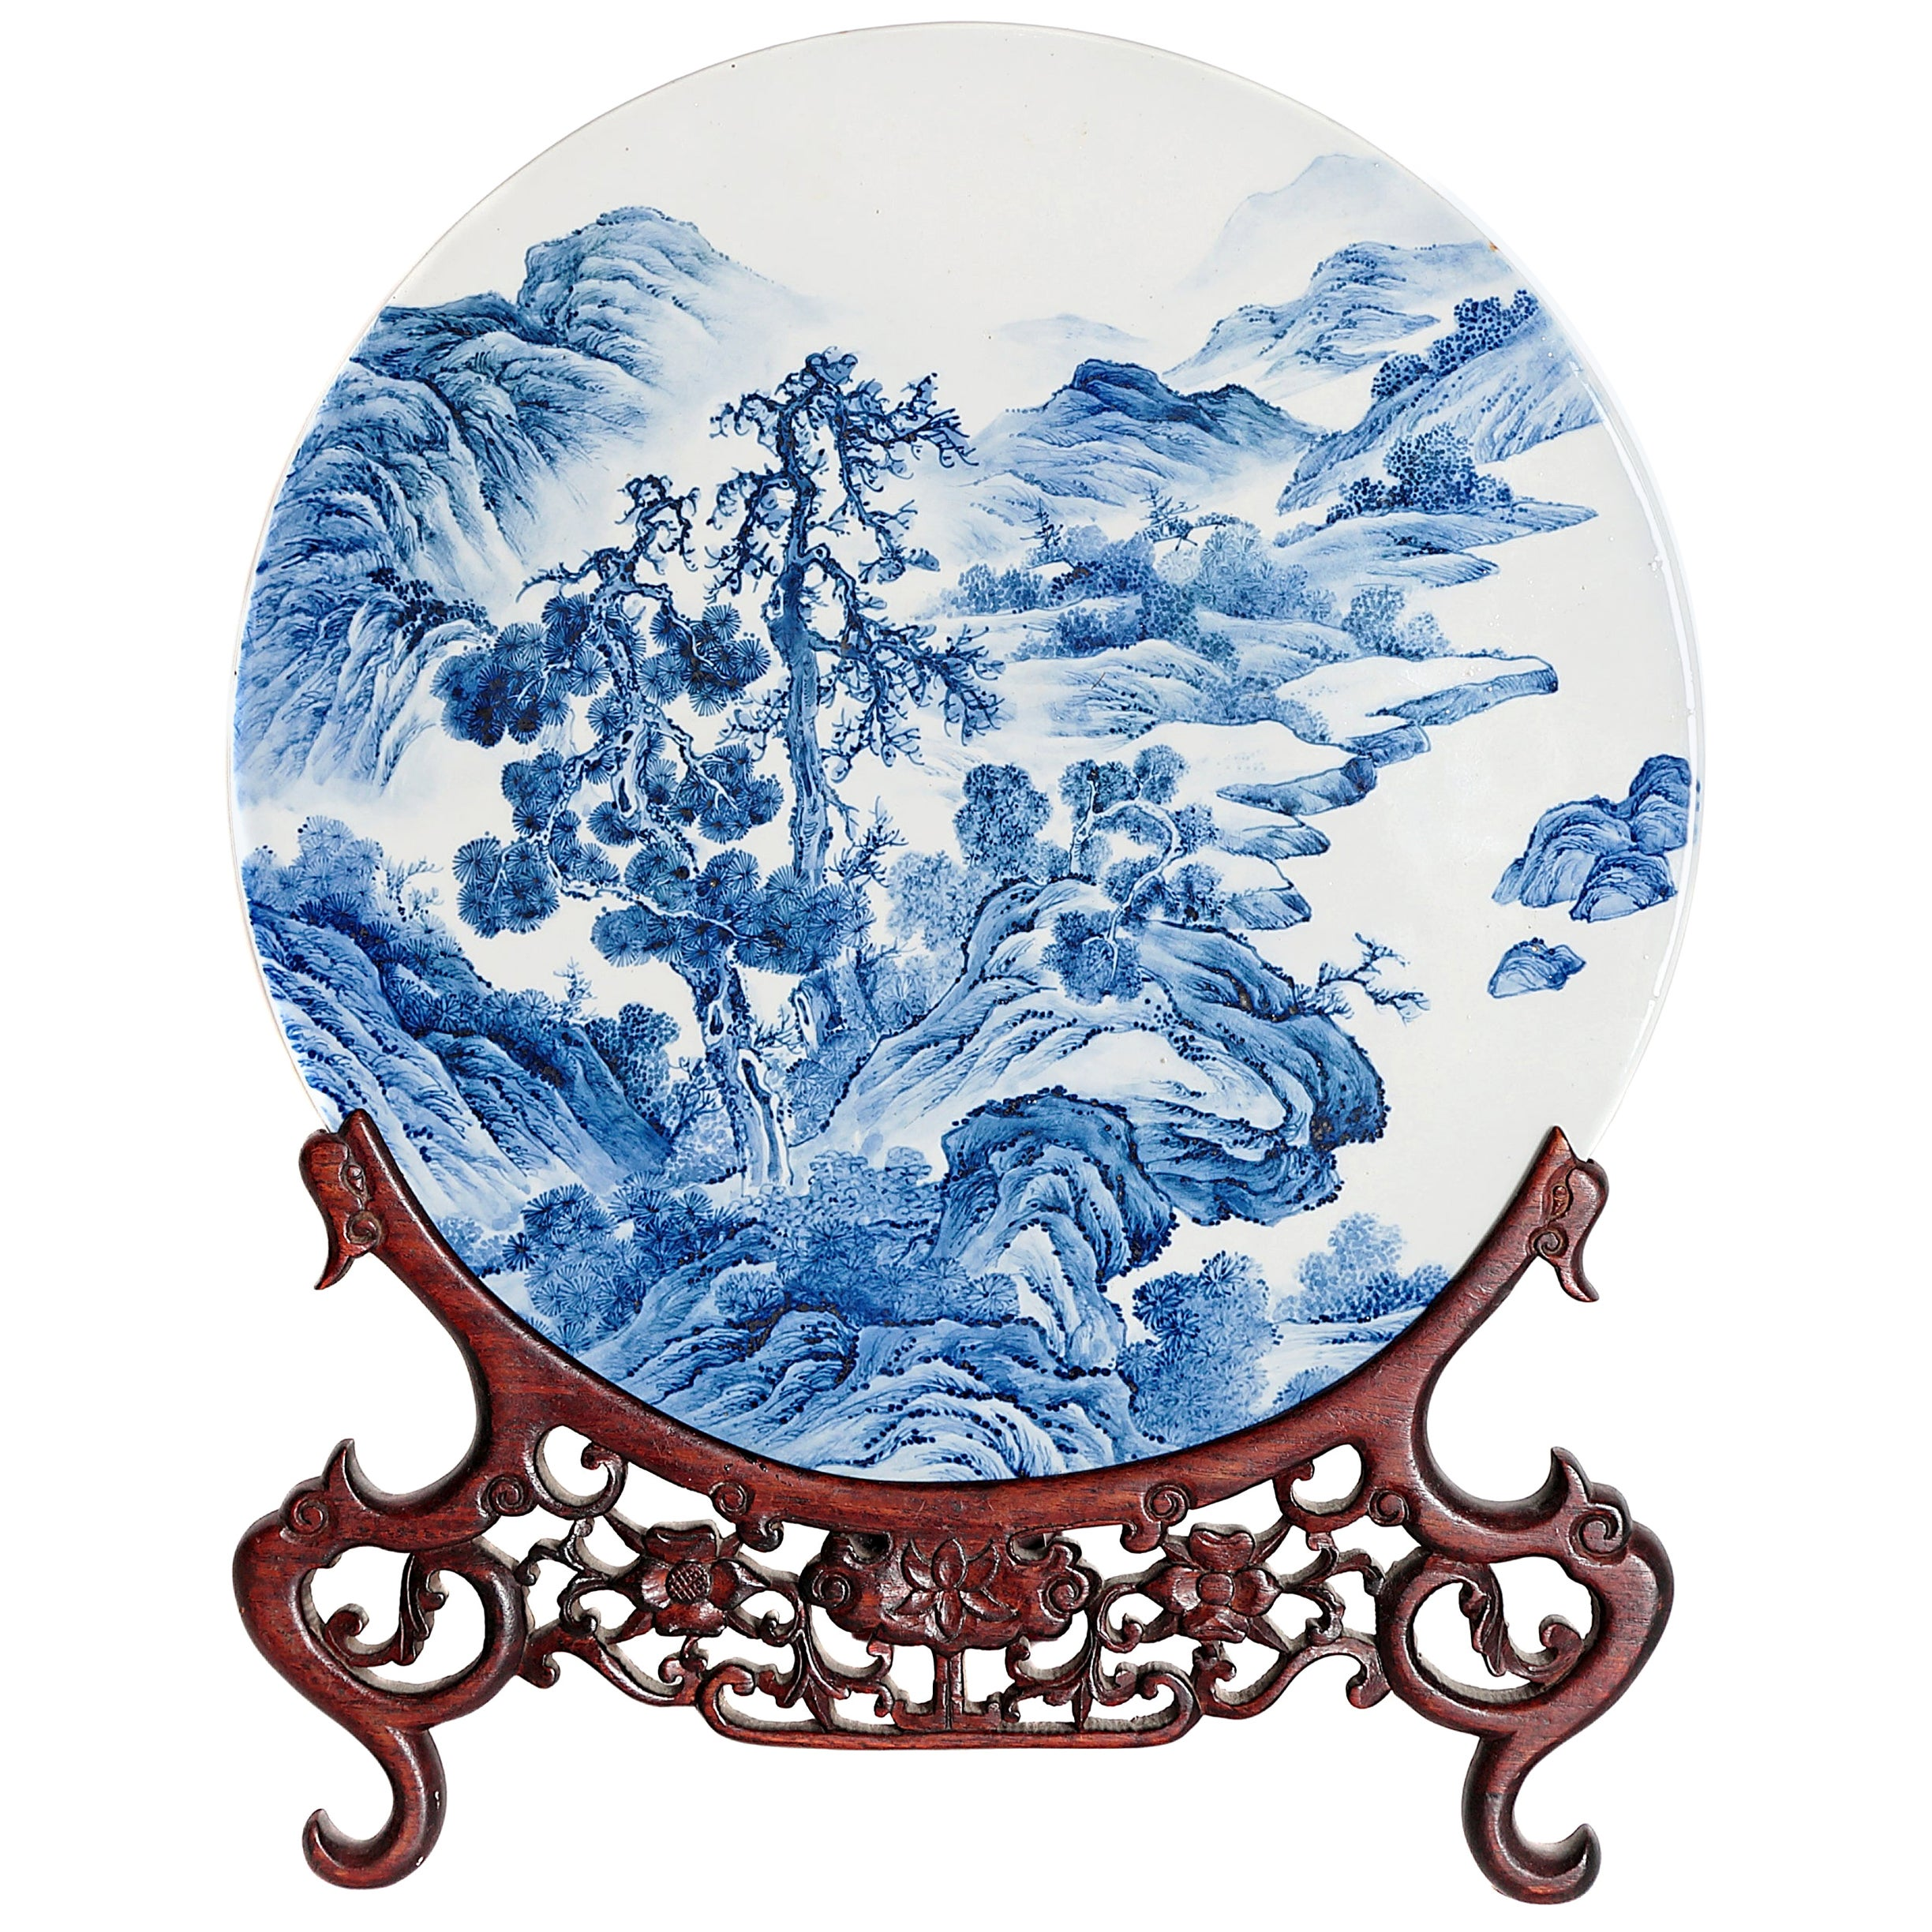 Chinese Blue and White Porcelain Plaque with a Carved Wooden Stand